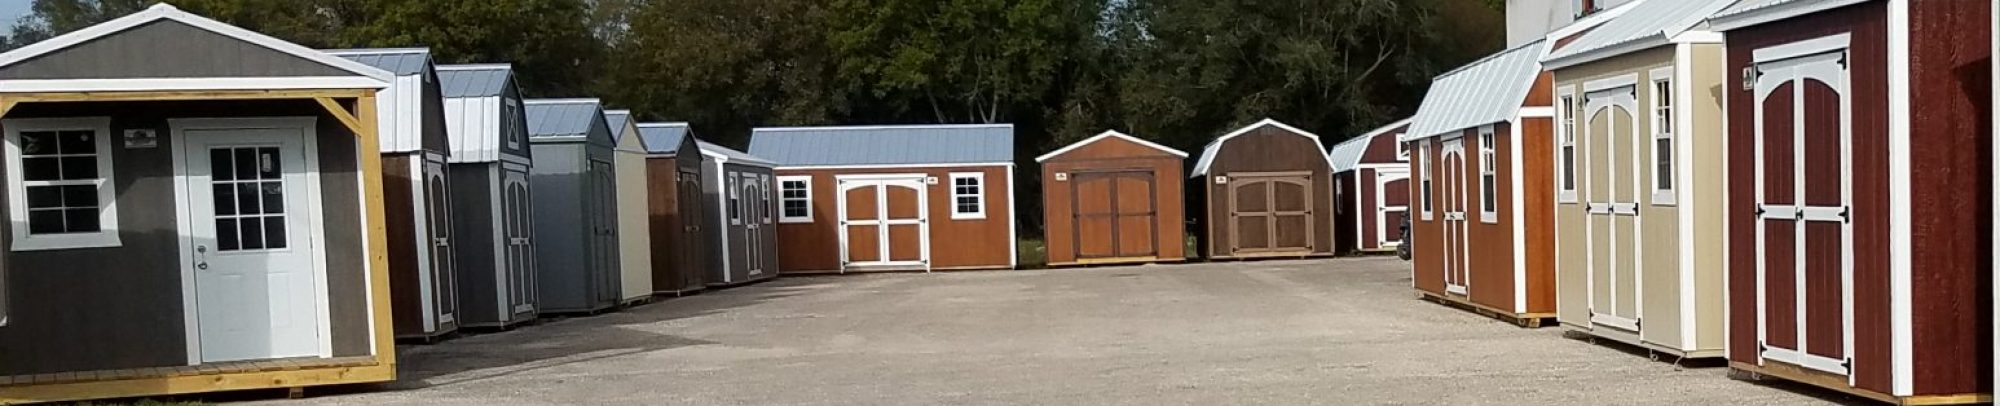 South Country Sheds - Your Quality Shed Source!